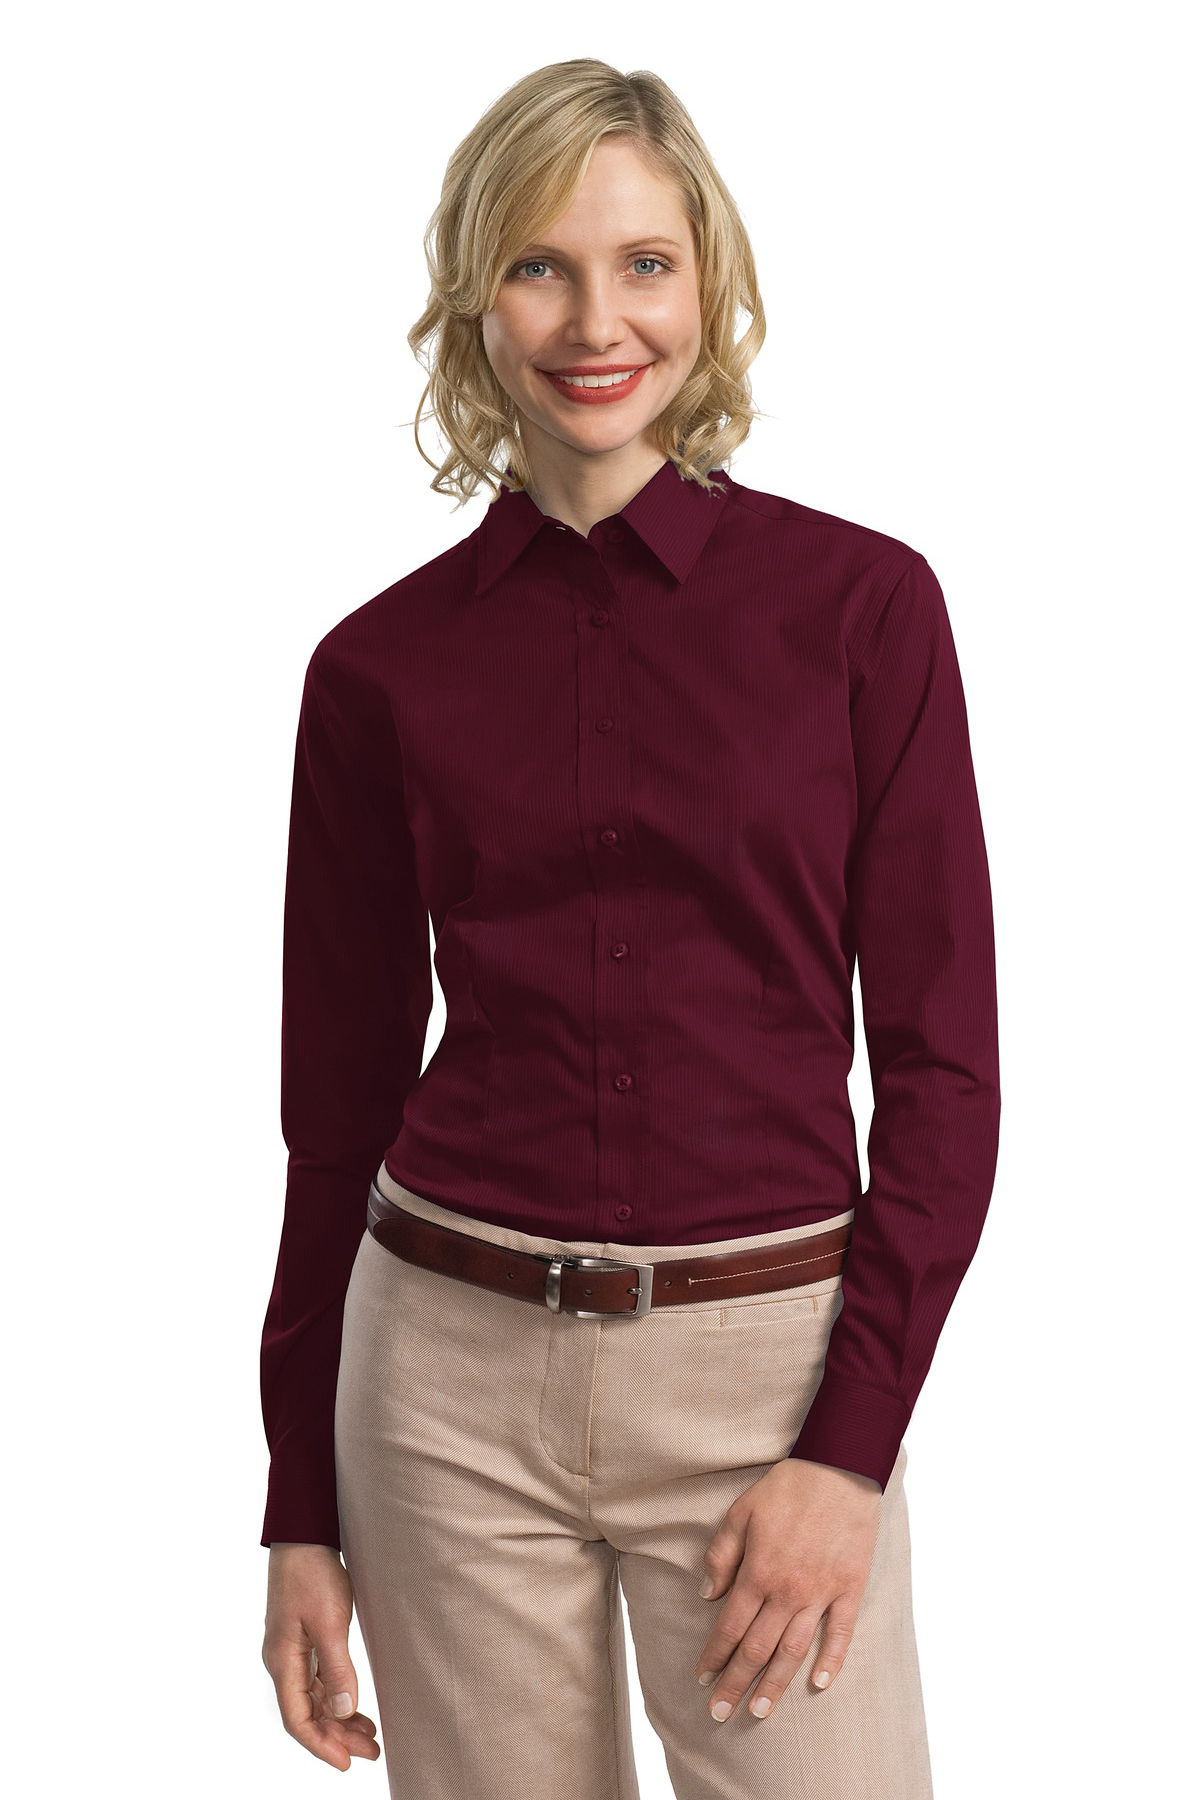 Woven-Shirts-Easy-Care-10